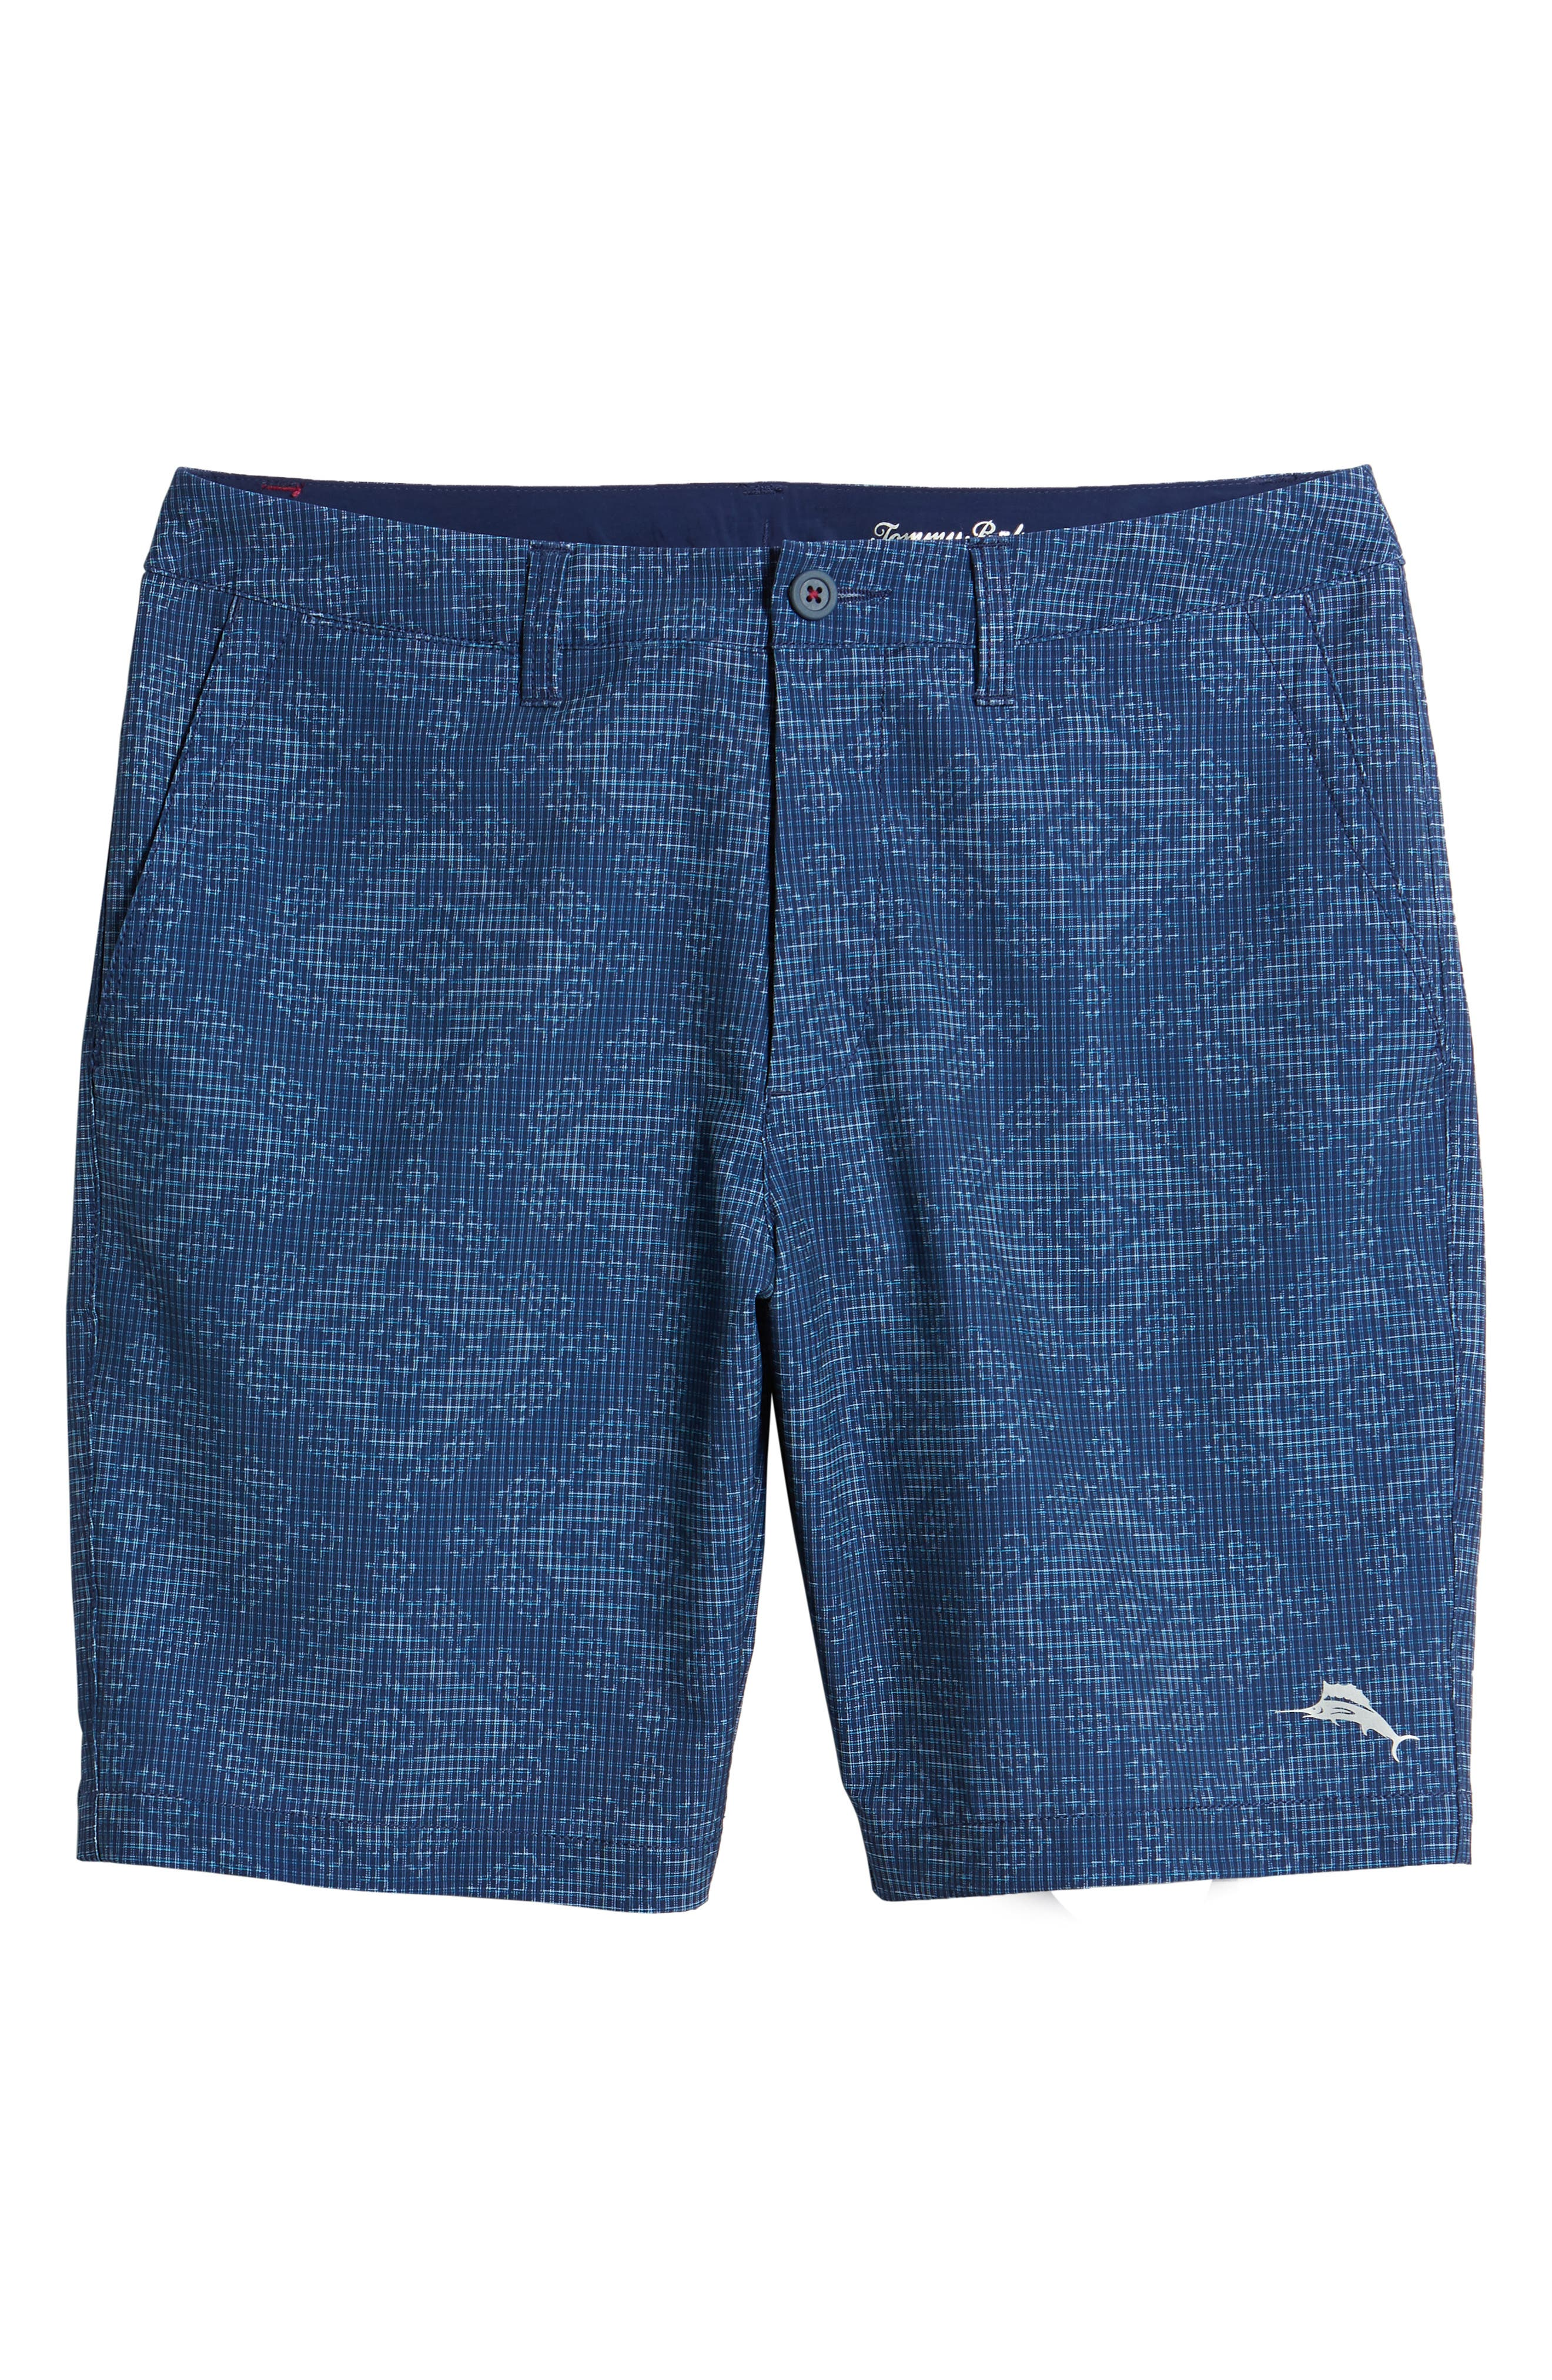 Cayman Geo de Mayo Swim Trunks,                             Alternate thumbnail 6, color,                             Throne Blue